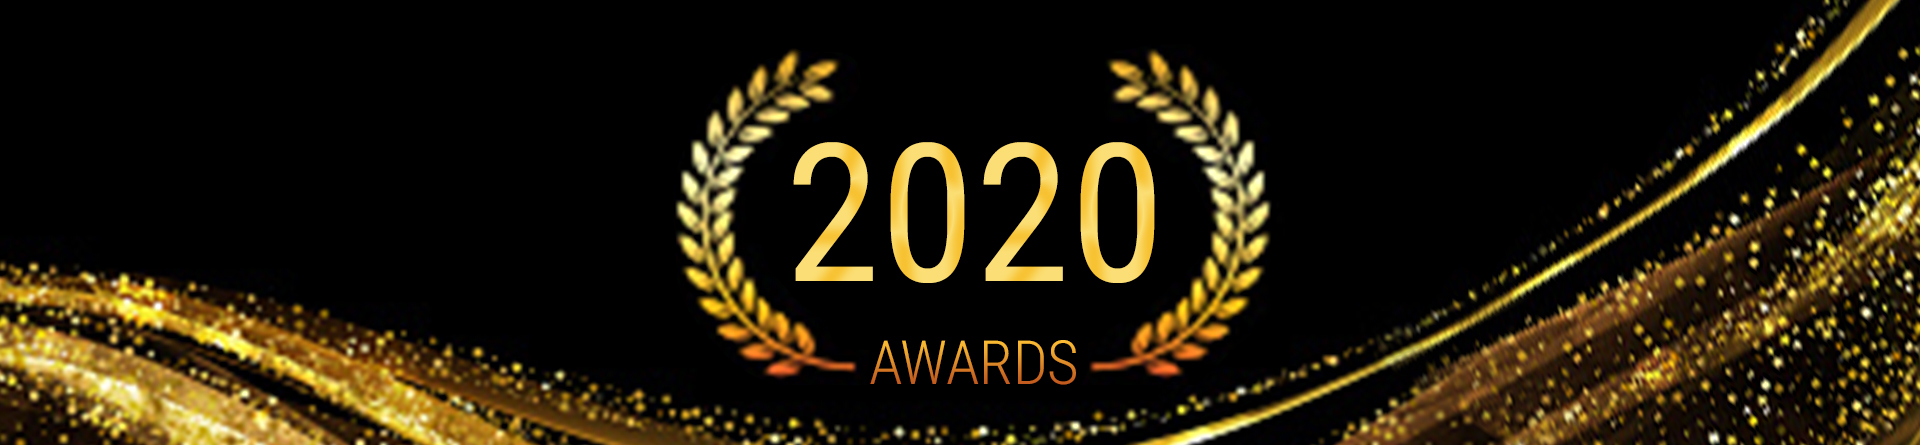 Protected: 2020 Awards